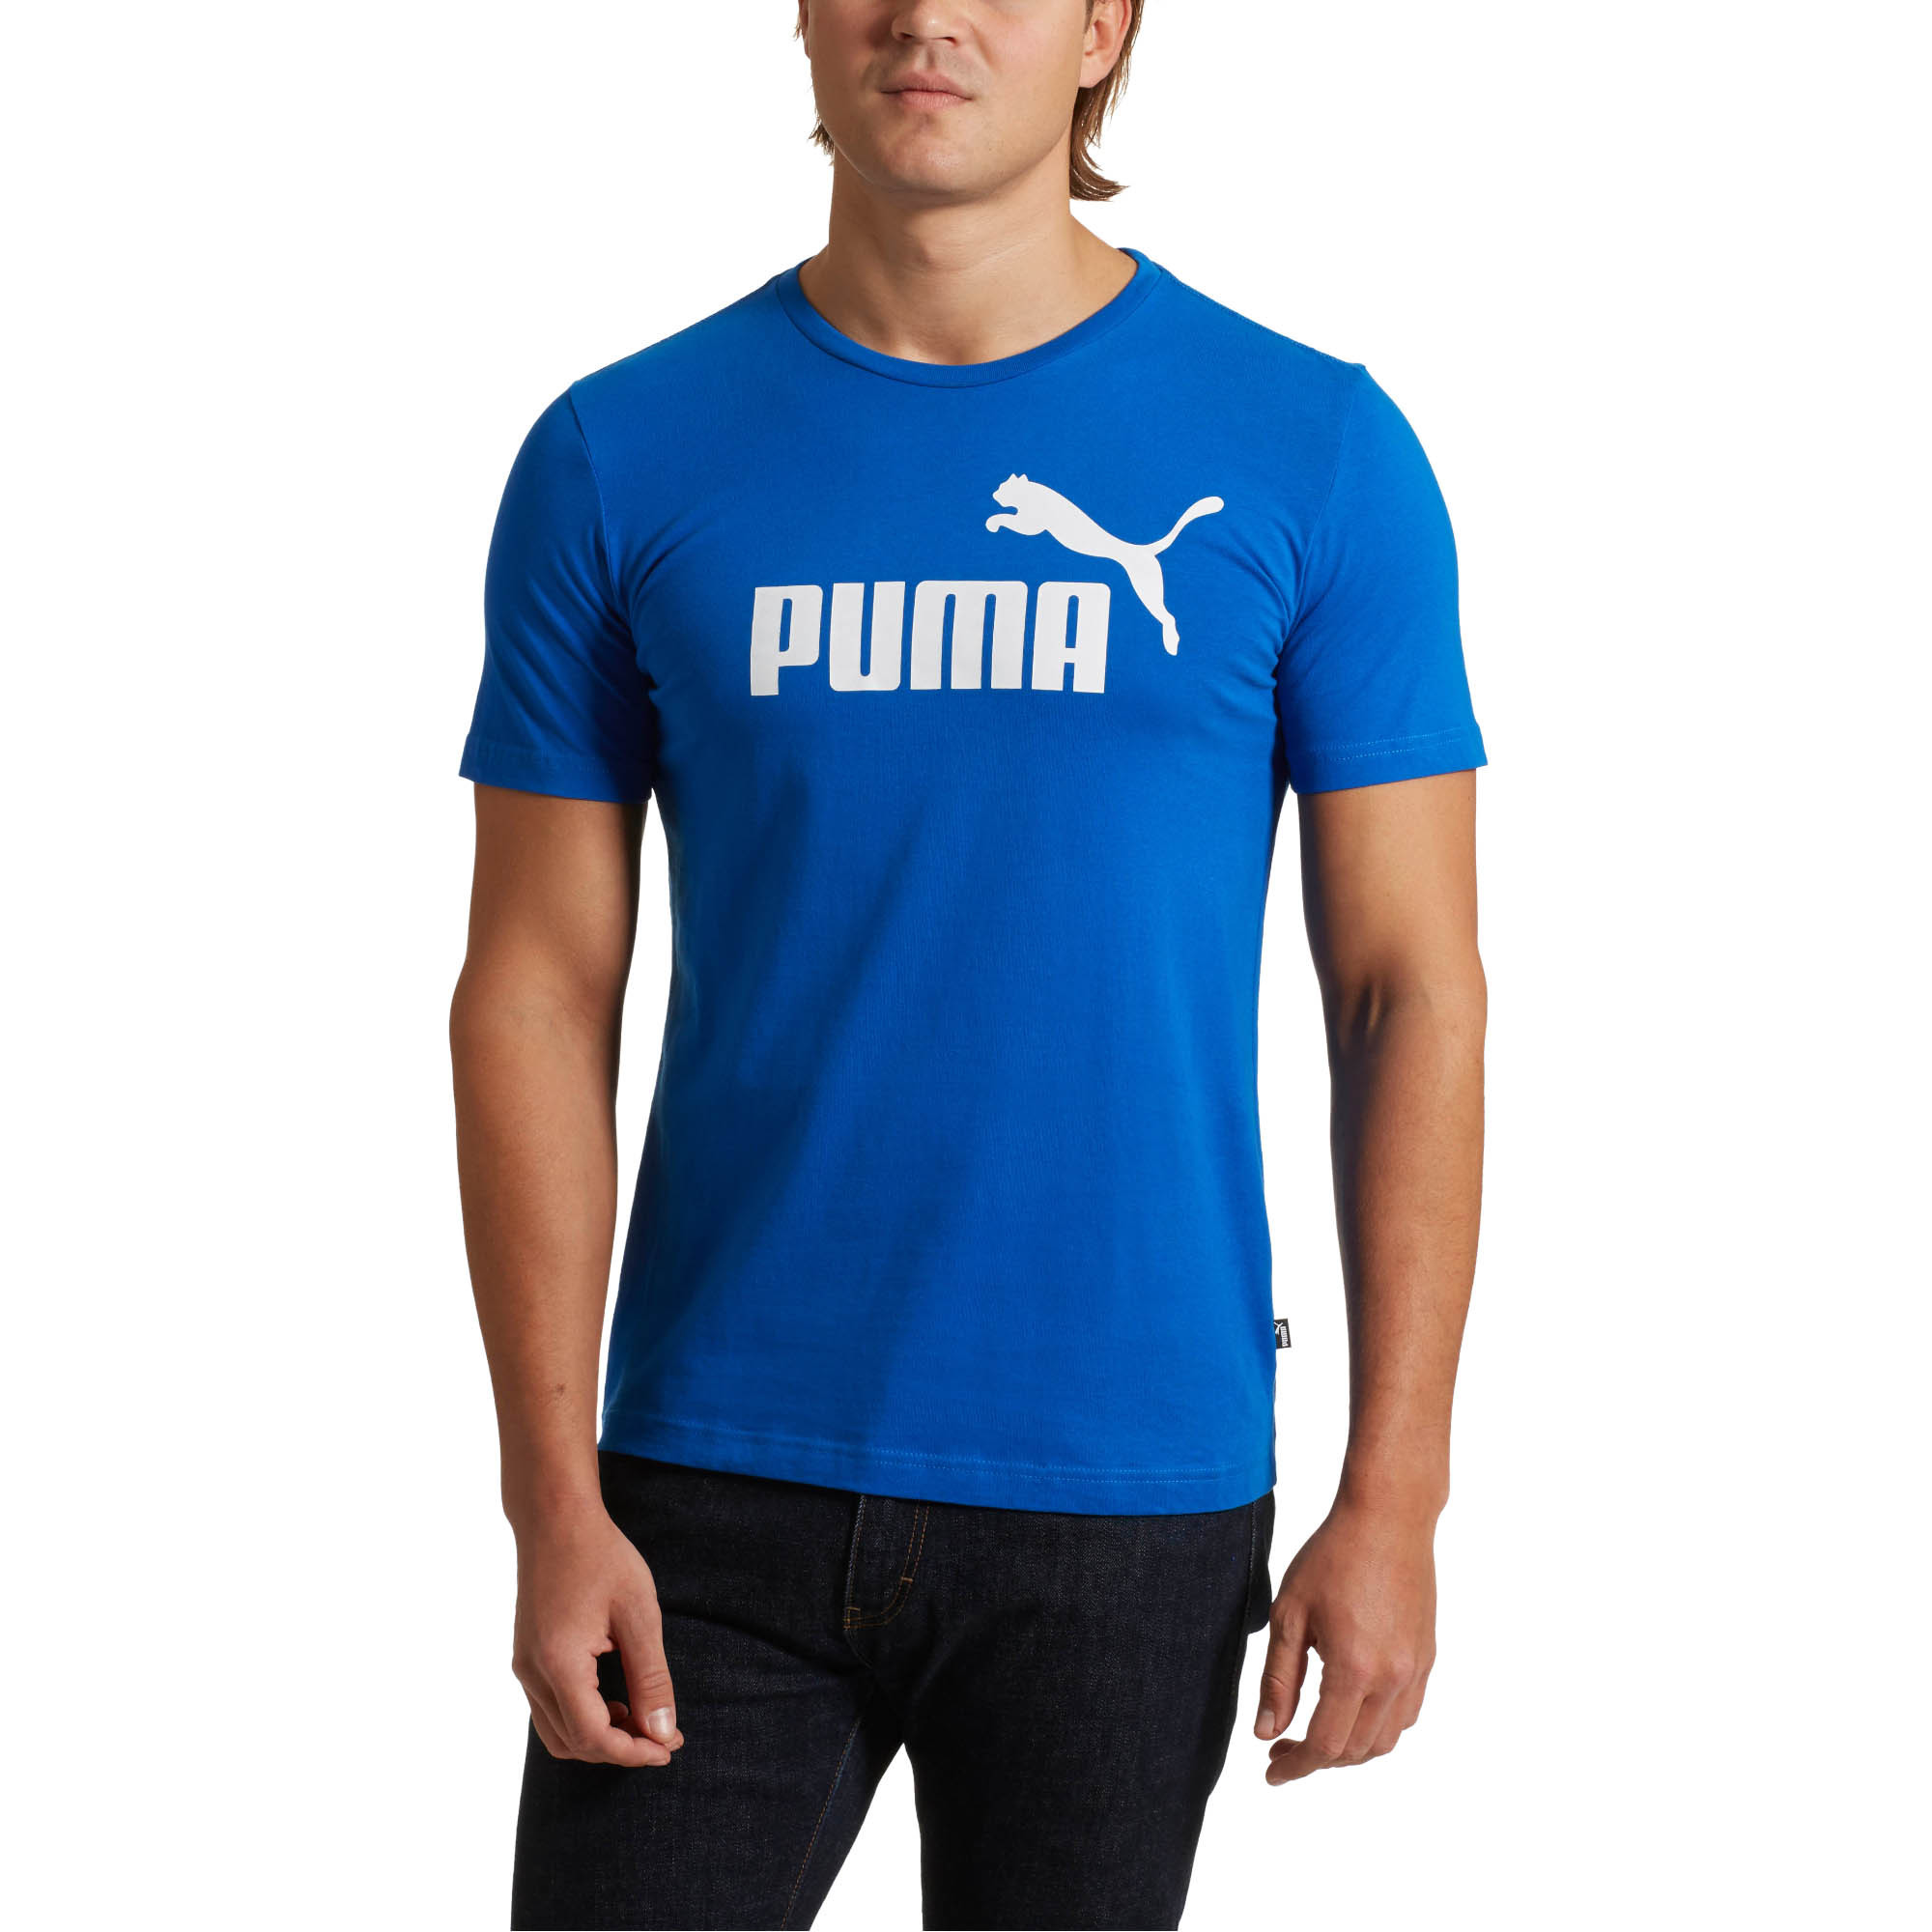 PUMA-Essentials-Men-039-s-Tee-Men-Tee-Basics thumbnail 4